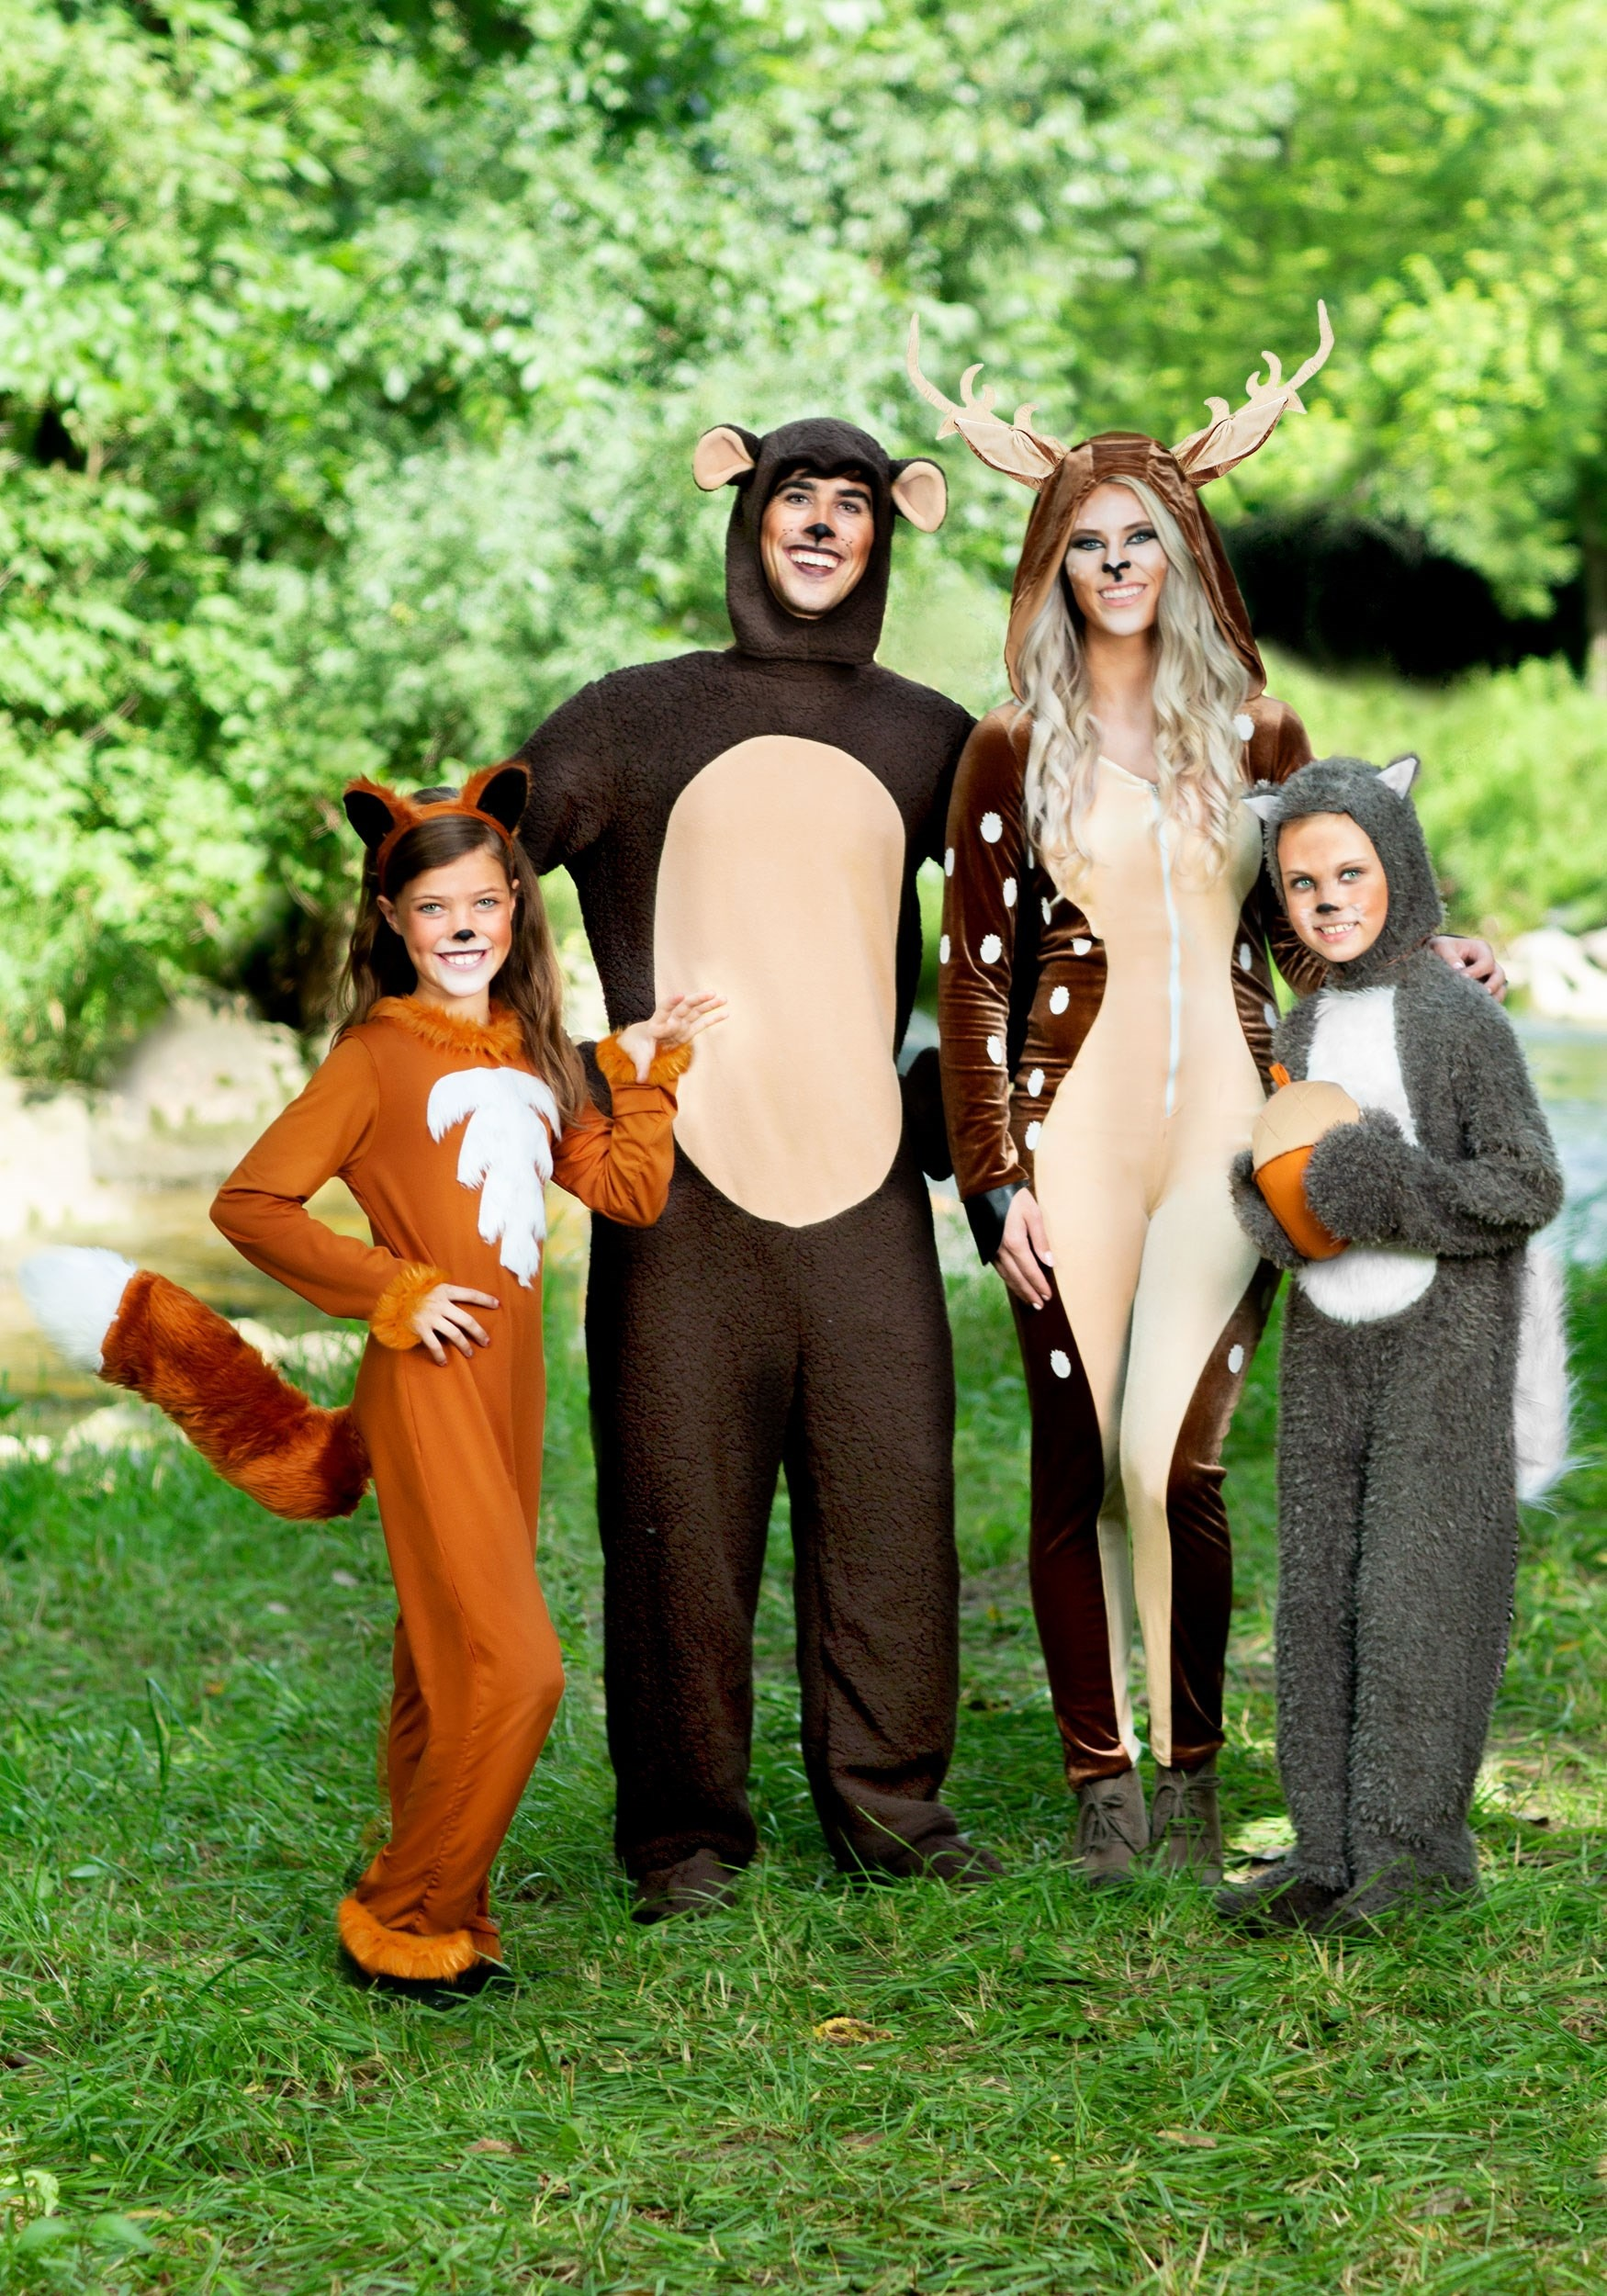 Brown Bear Costume - Animal Halloween Costumes for Adults